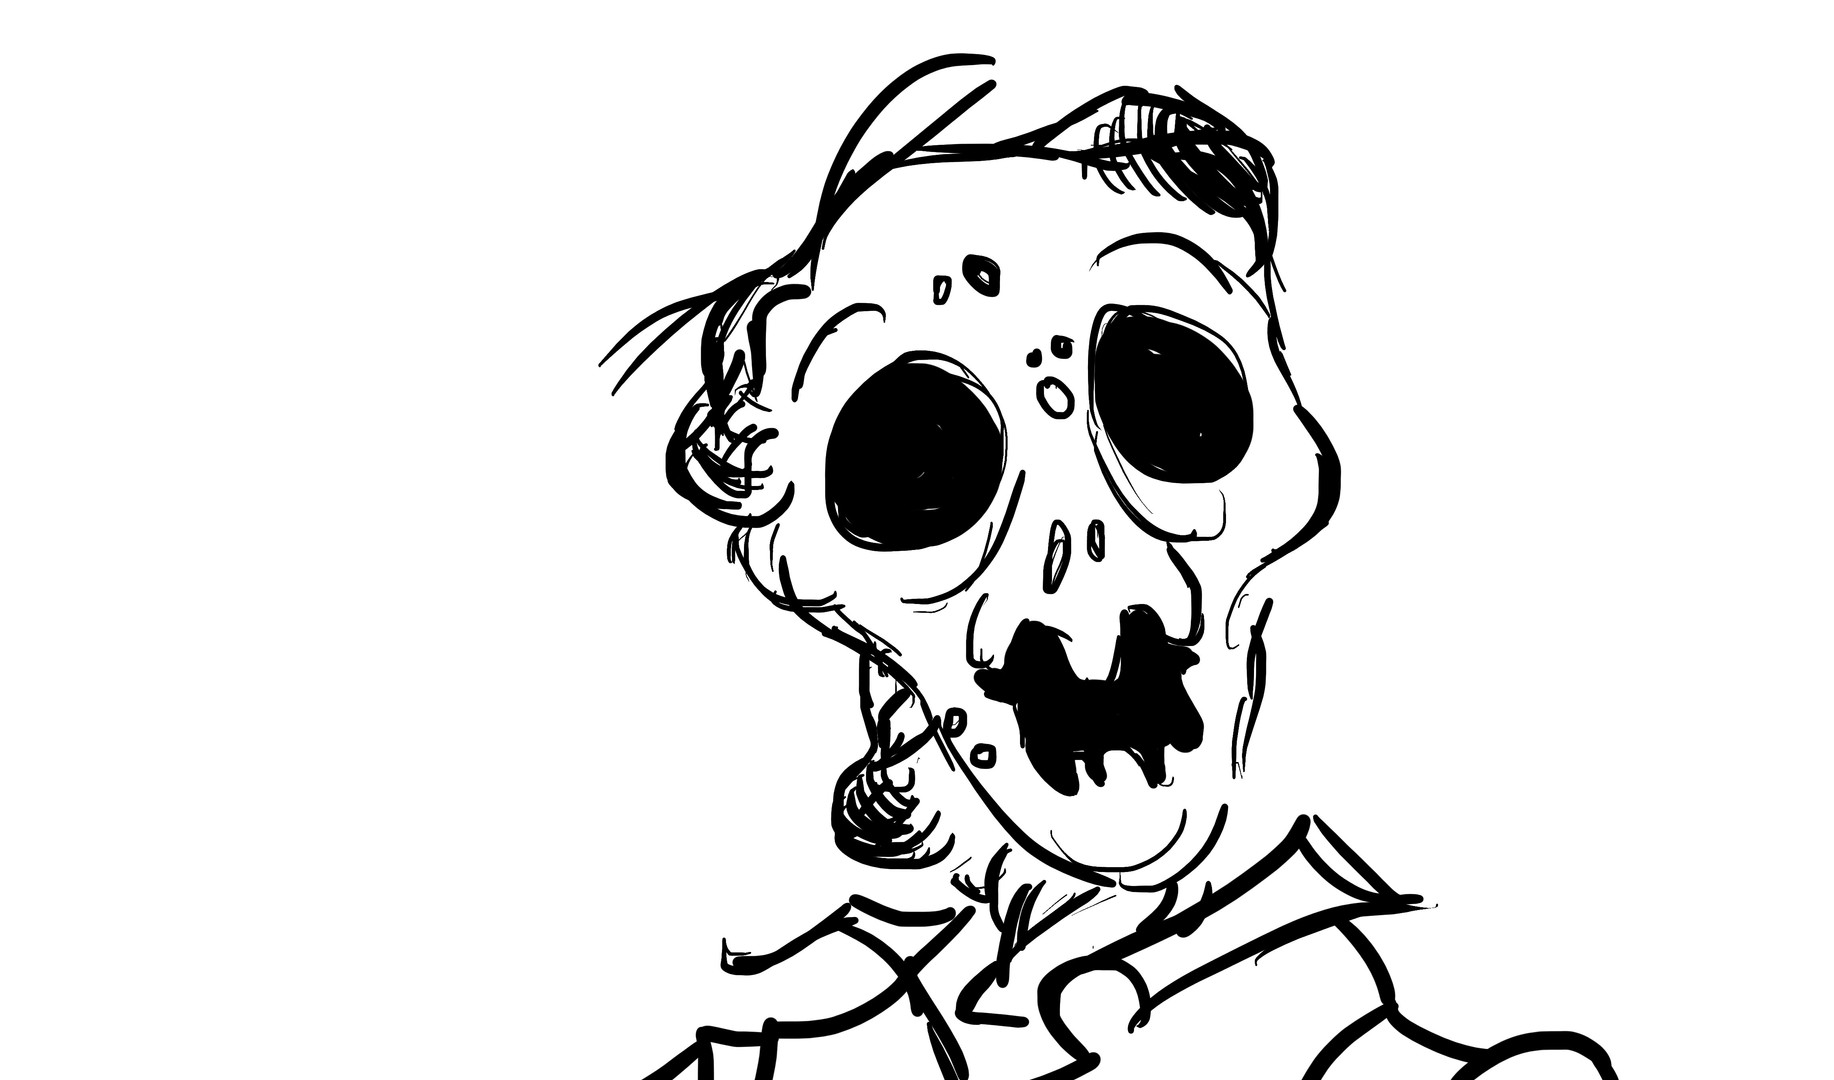 STORYBOARD - N - _0004_Layer Comp 10.jpg